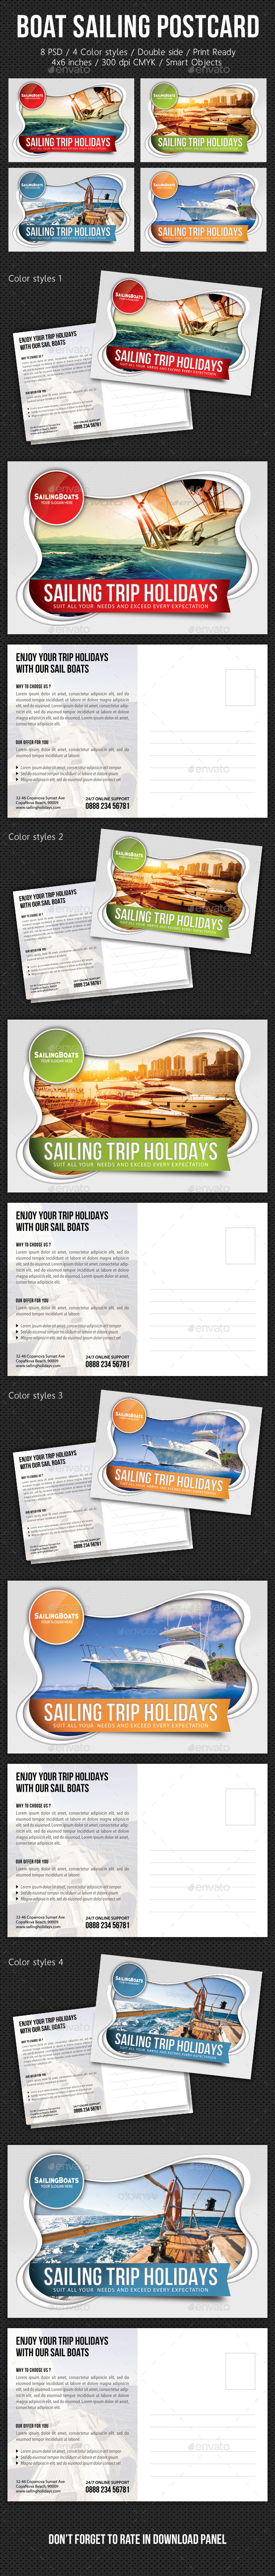 Boat Sailing Postcard Template V03 - Cards & Invites Print Templates